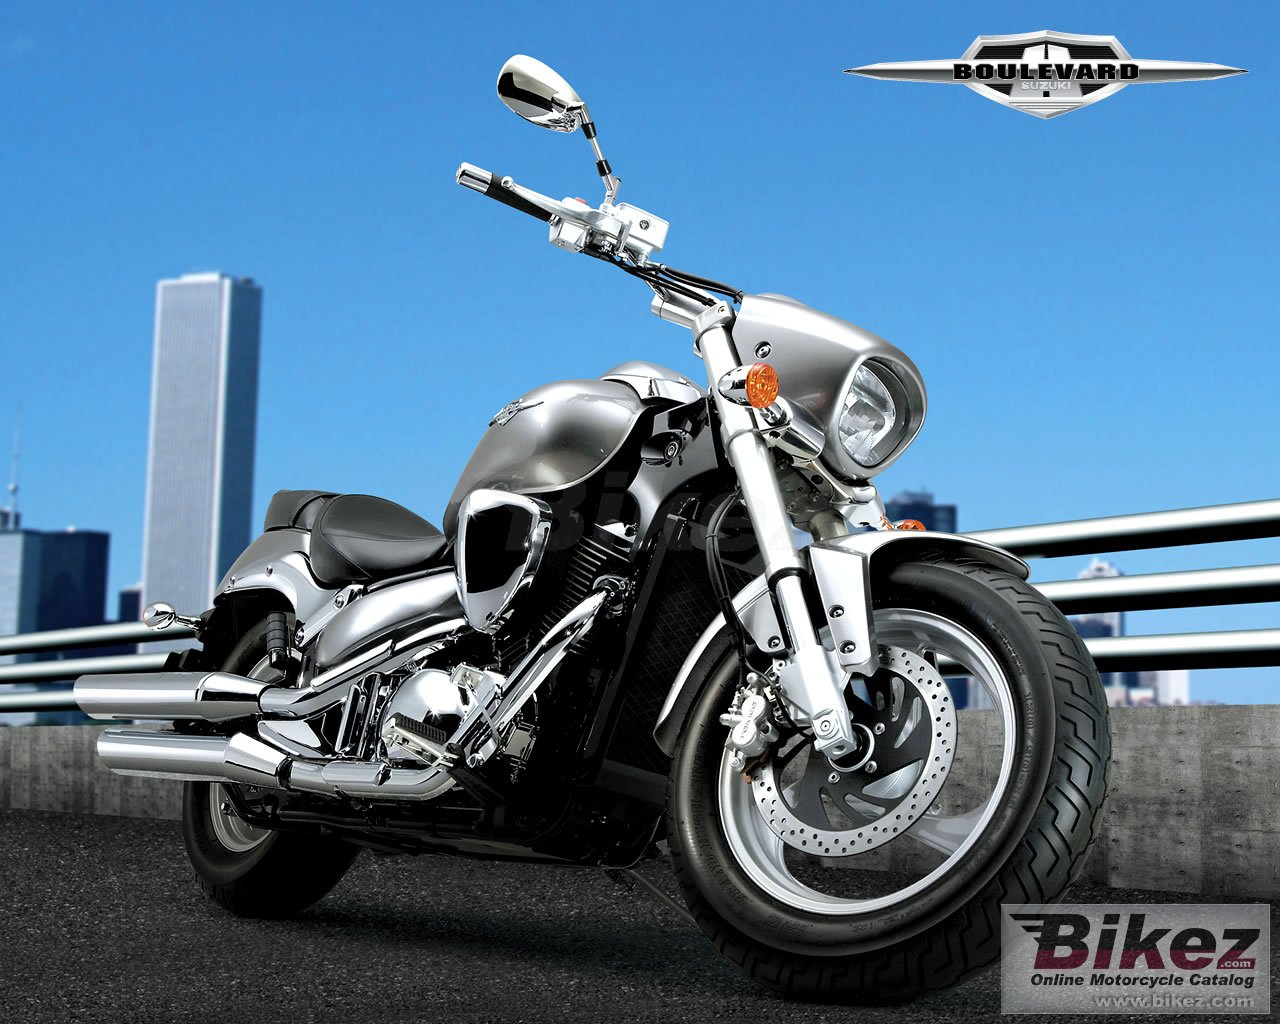 Big Suzuki boulevard 400 picture and wallpaper from Bikez.com